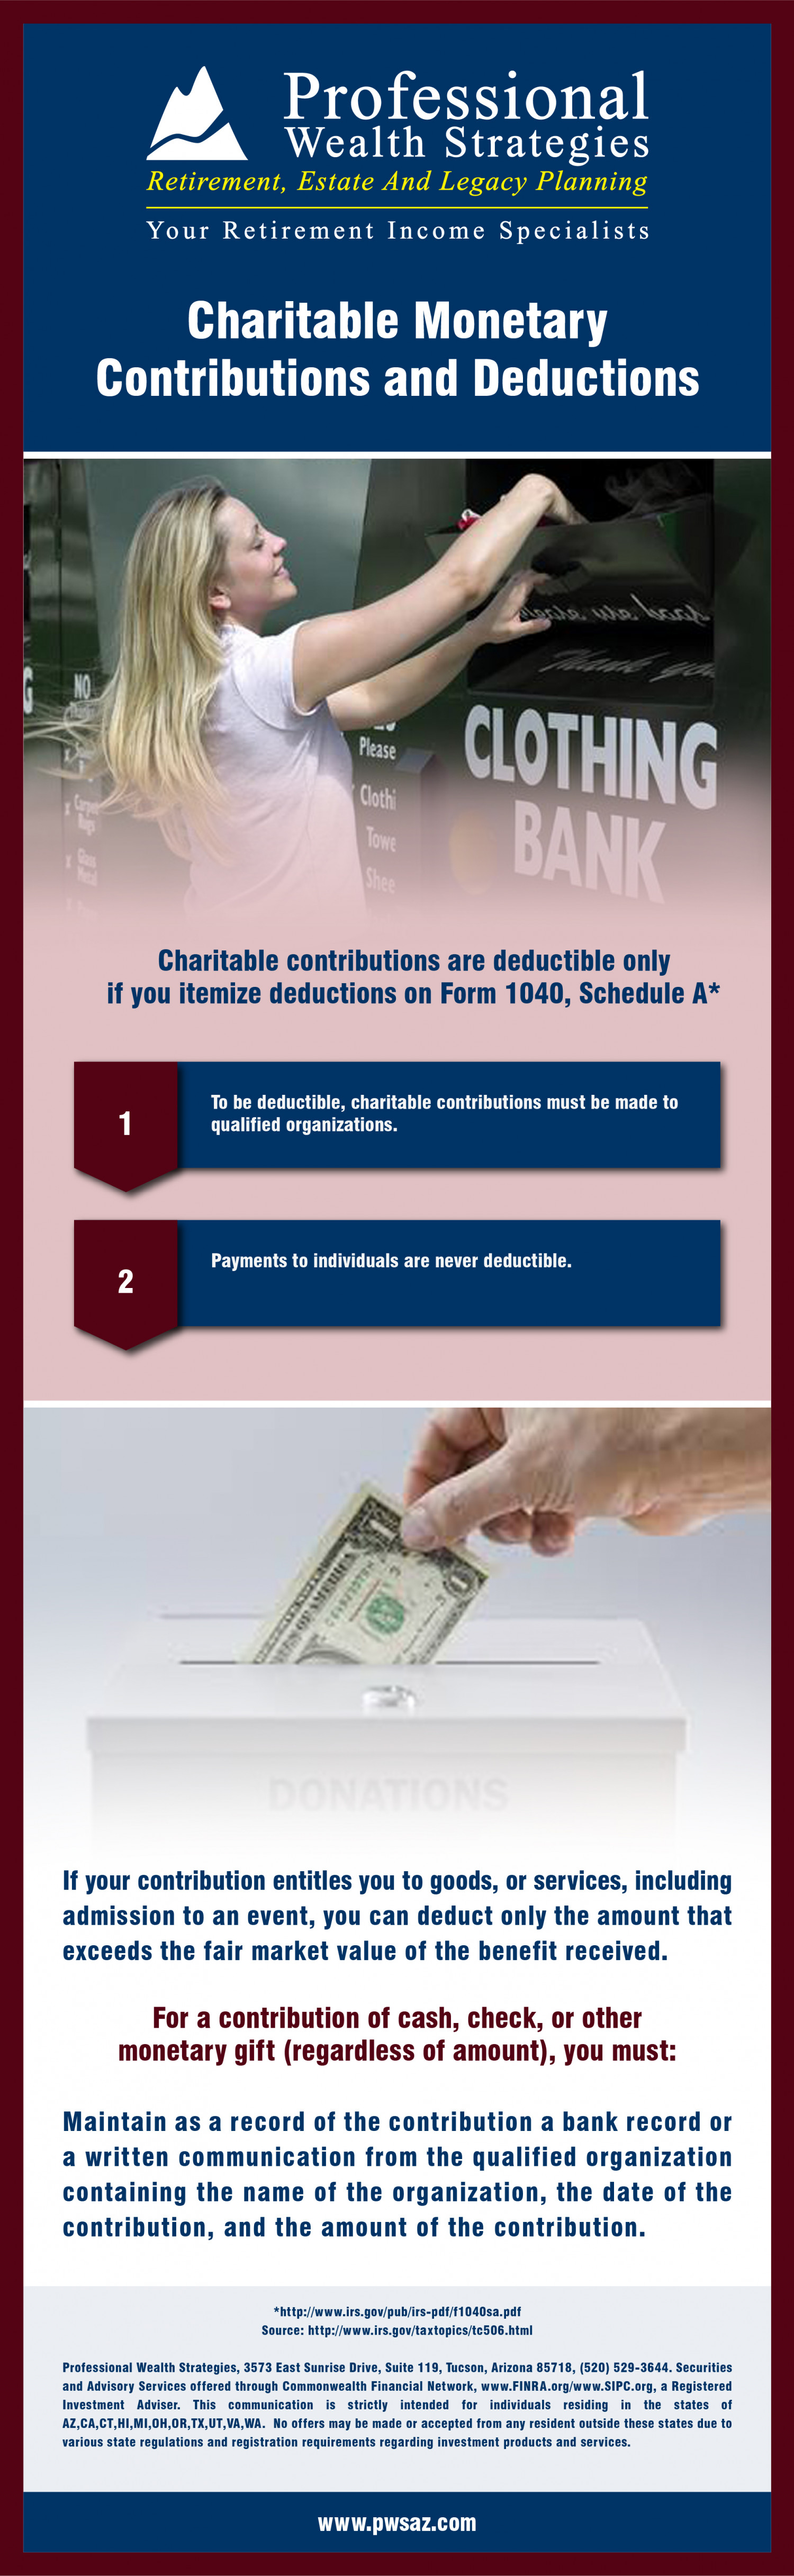 Charitable Monetary Contributions and Deductions Infographic